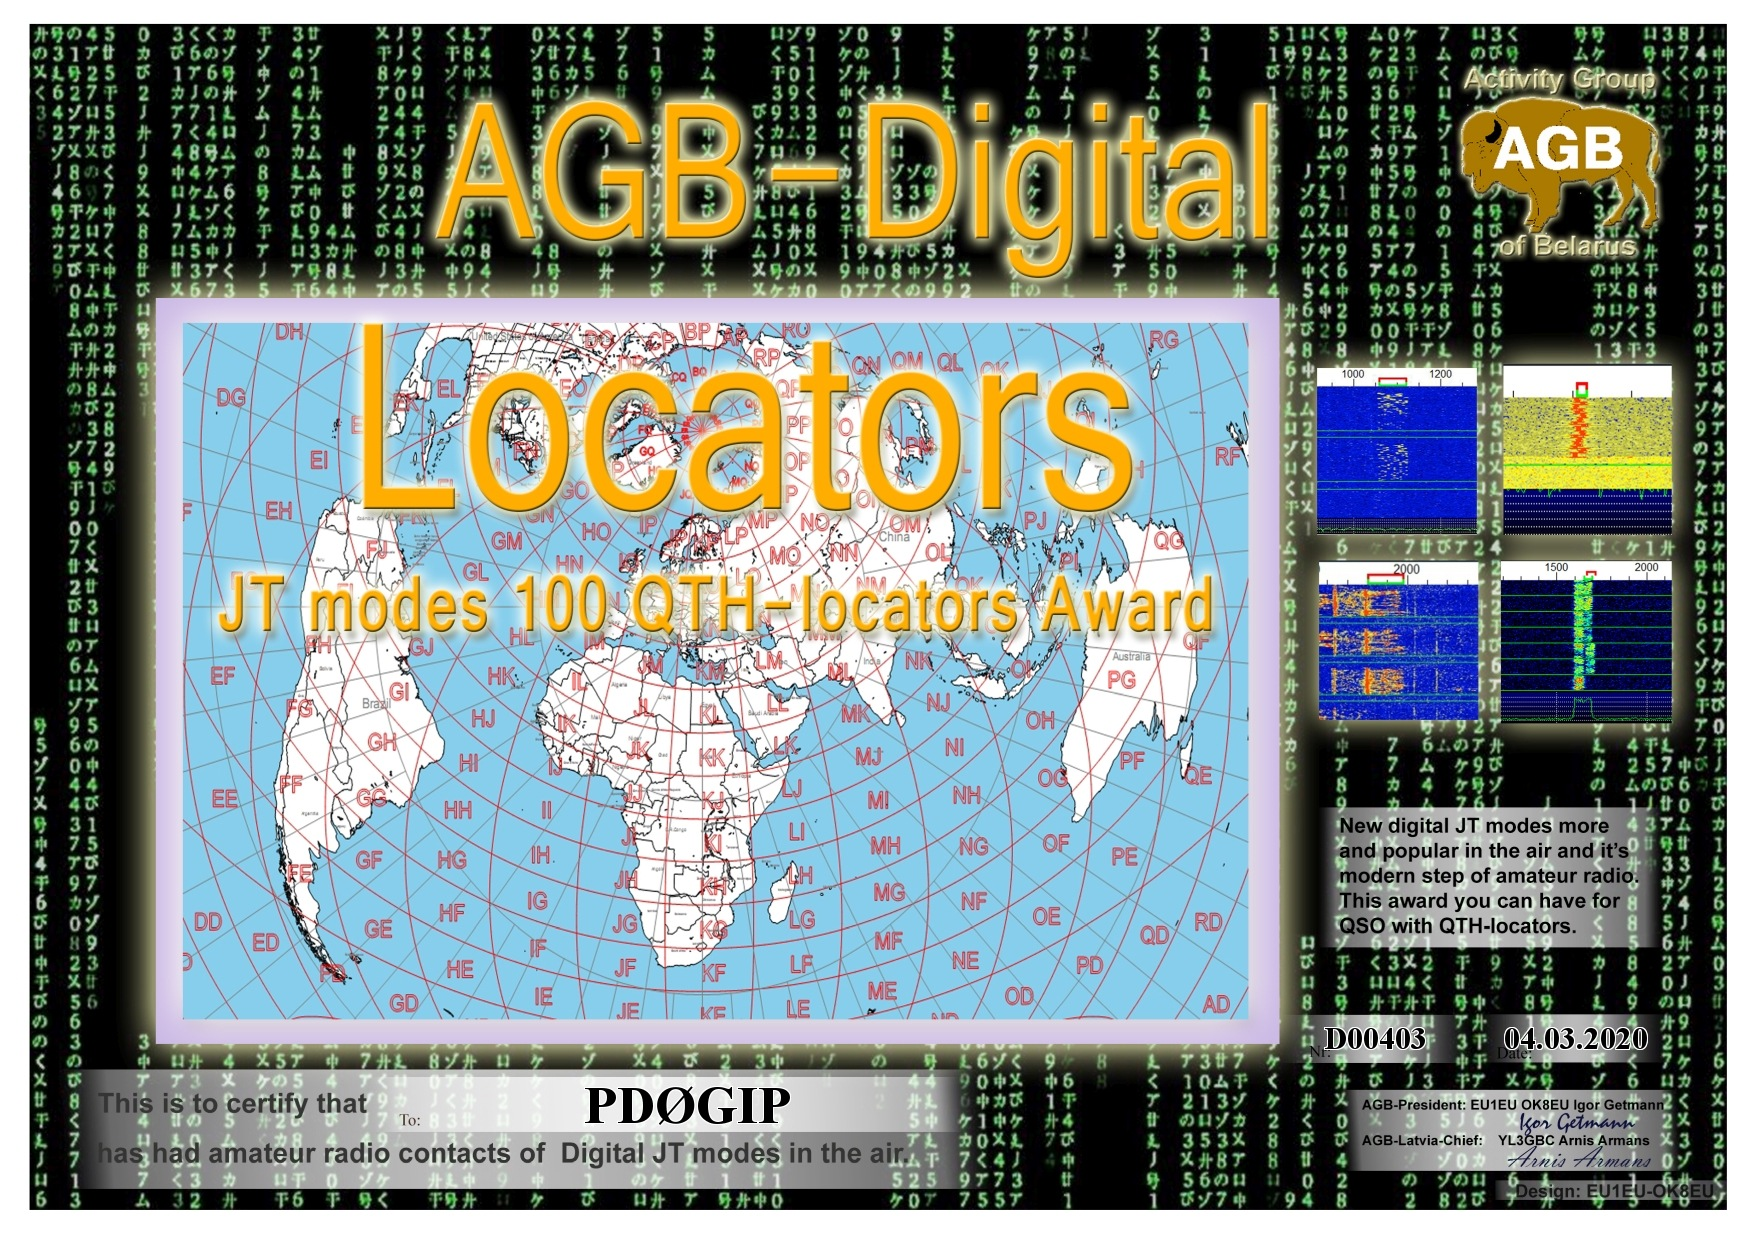 PD0GIP LOCATORS BASIC 100 AGB